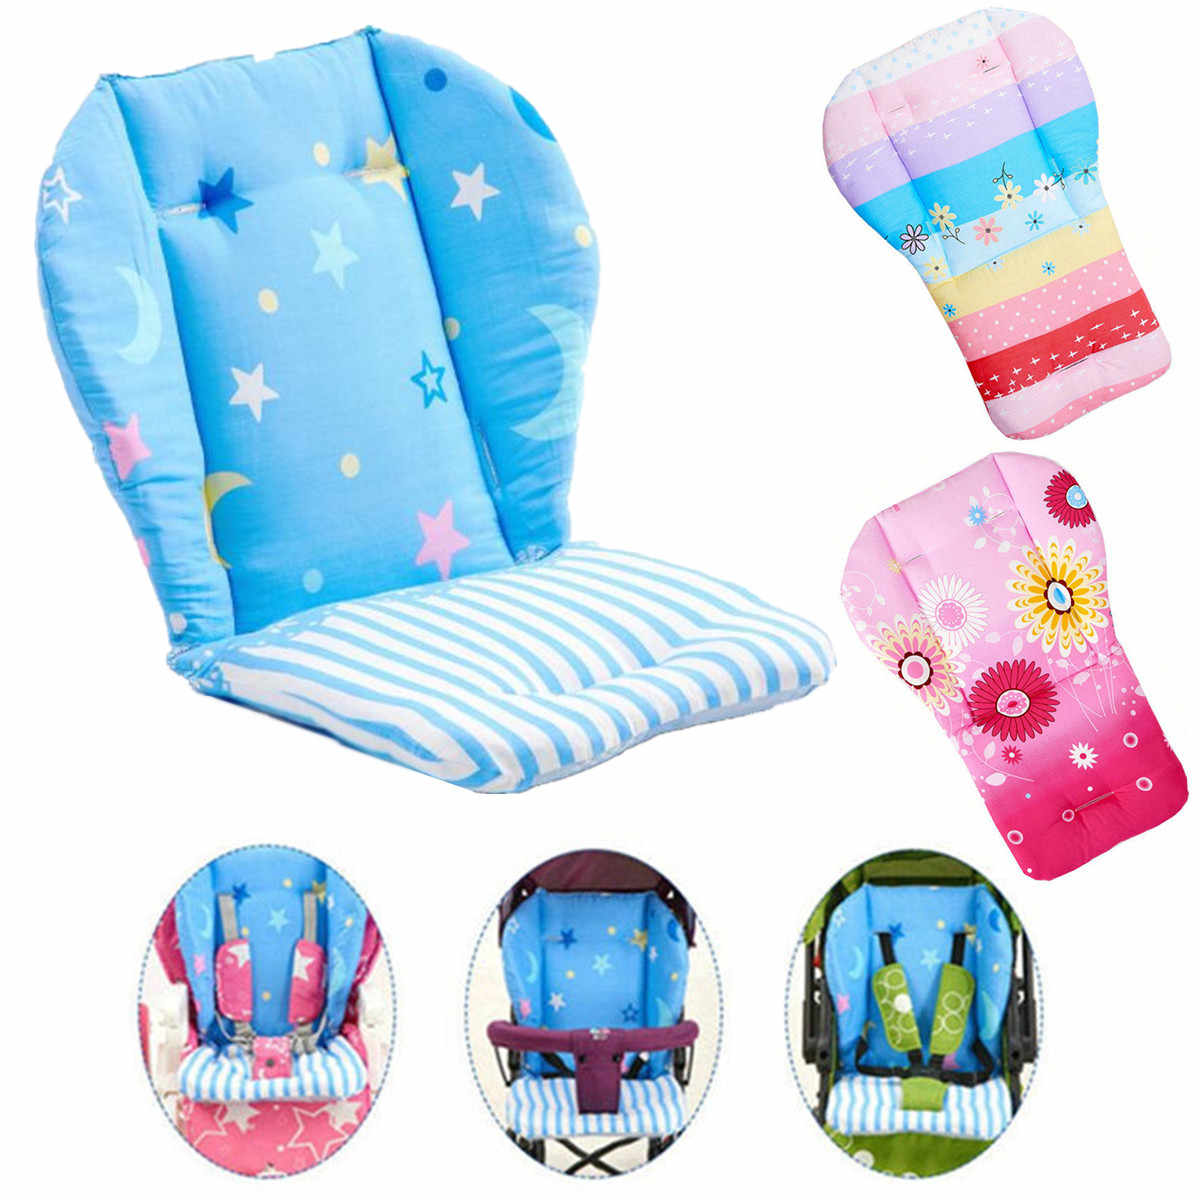 Baby High Chair Cushion Cover Kids Children  Booster Mats Pads Feeding Chair Cushion Stroller Seat Cushion Pure Cotton Fabrics